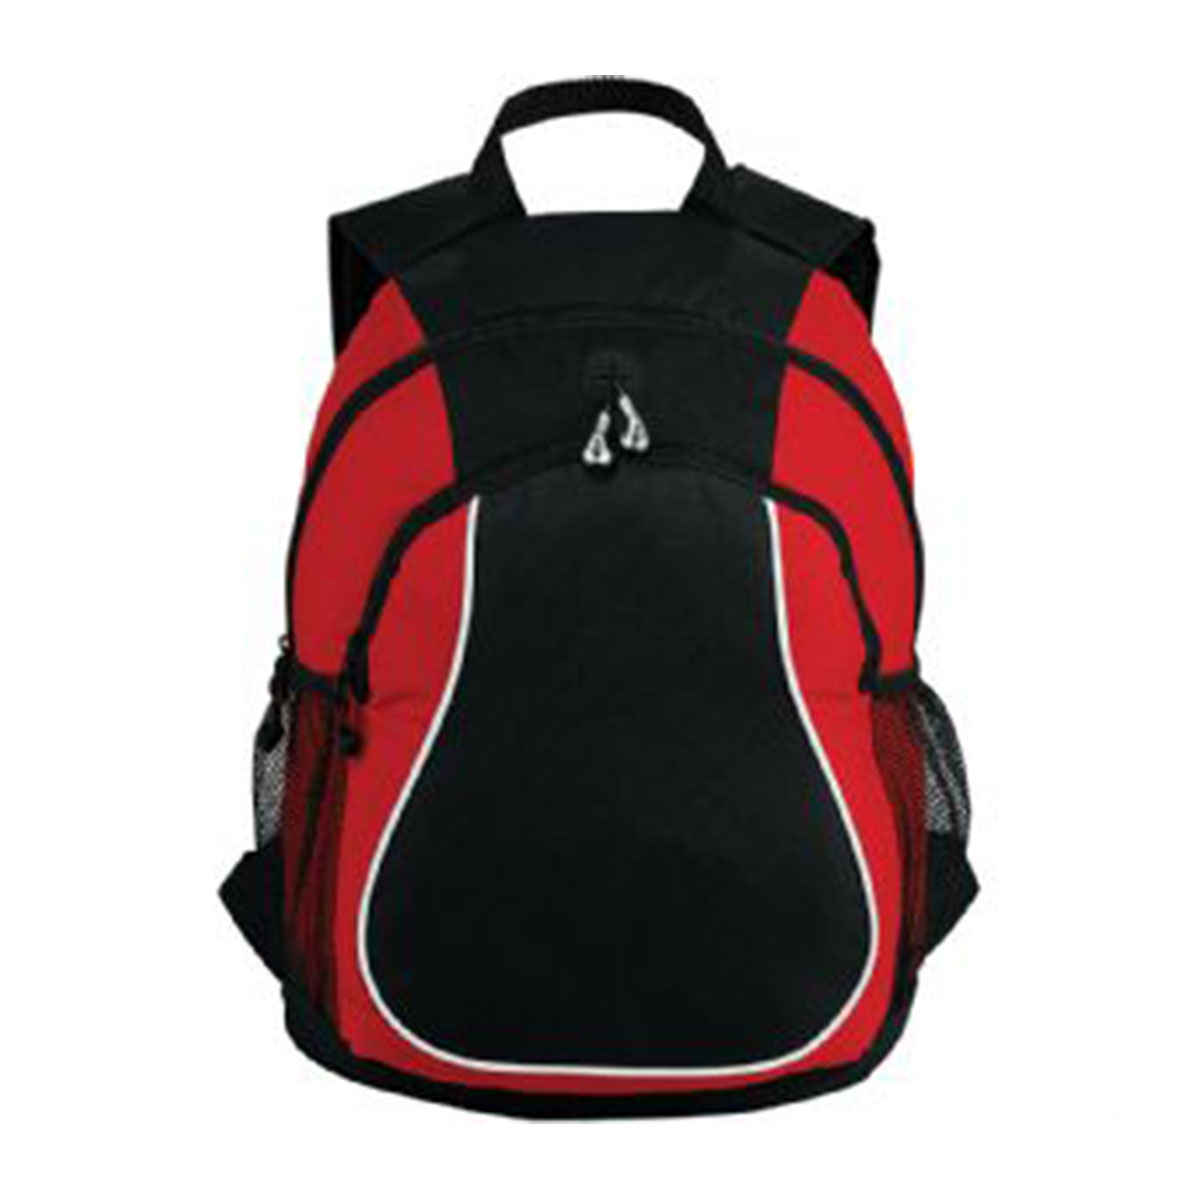 Coil Backpack-Red and Black with White Trim.